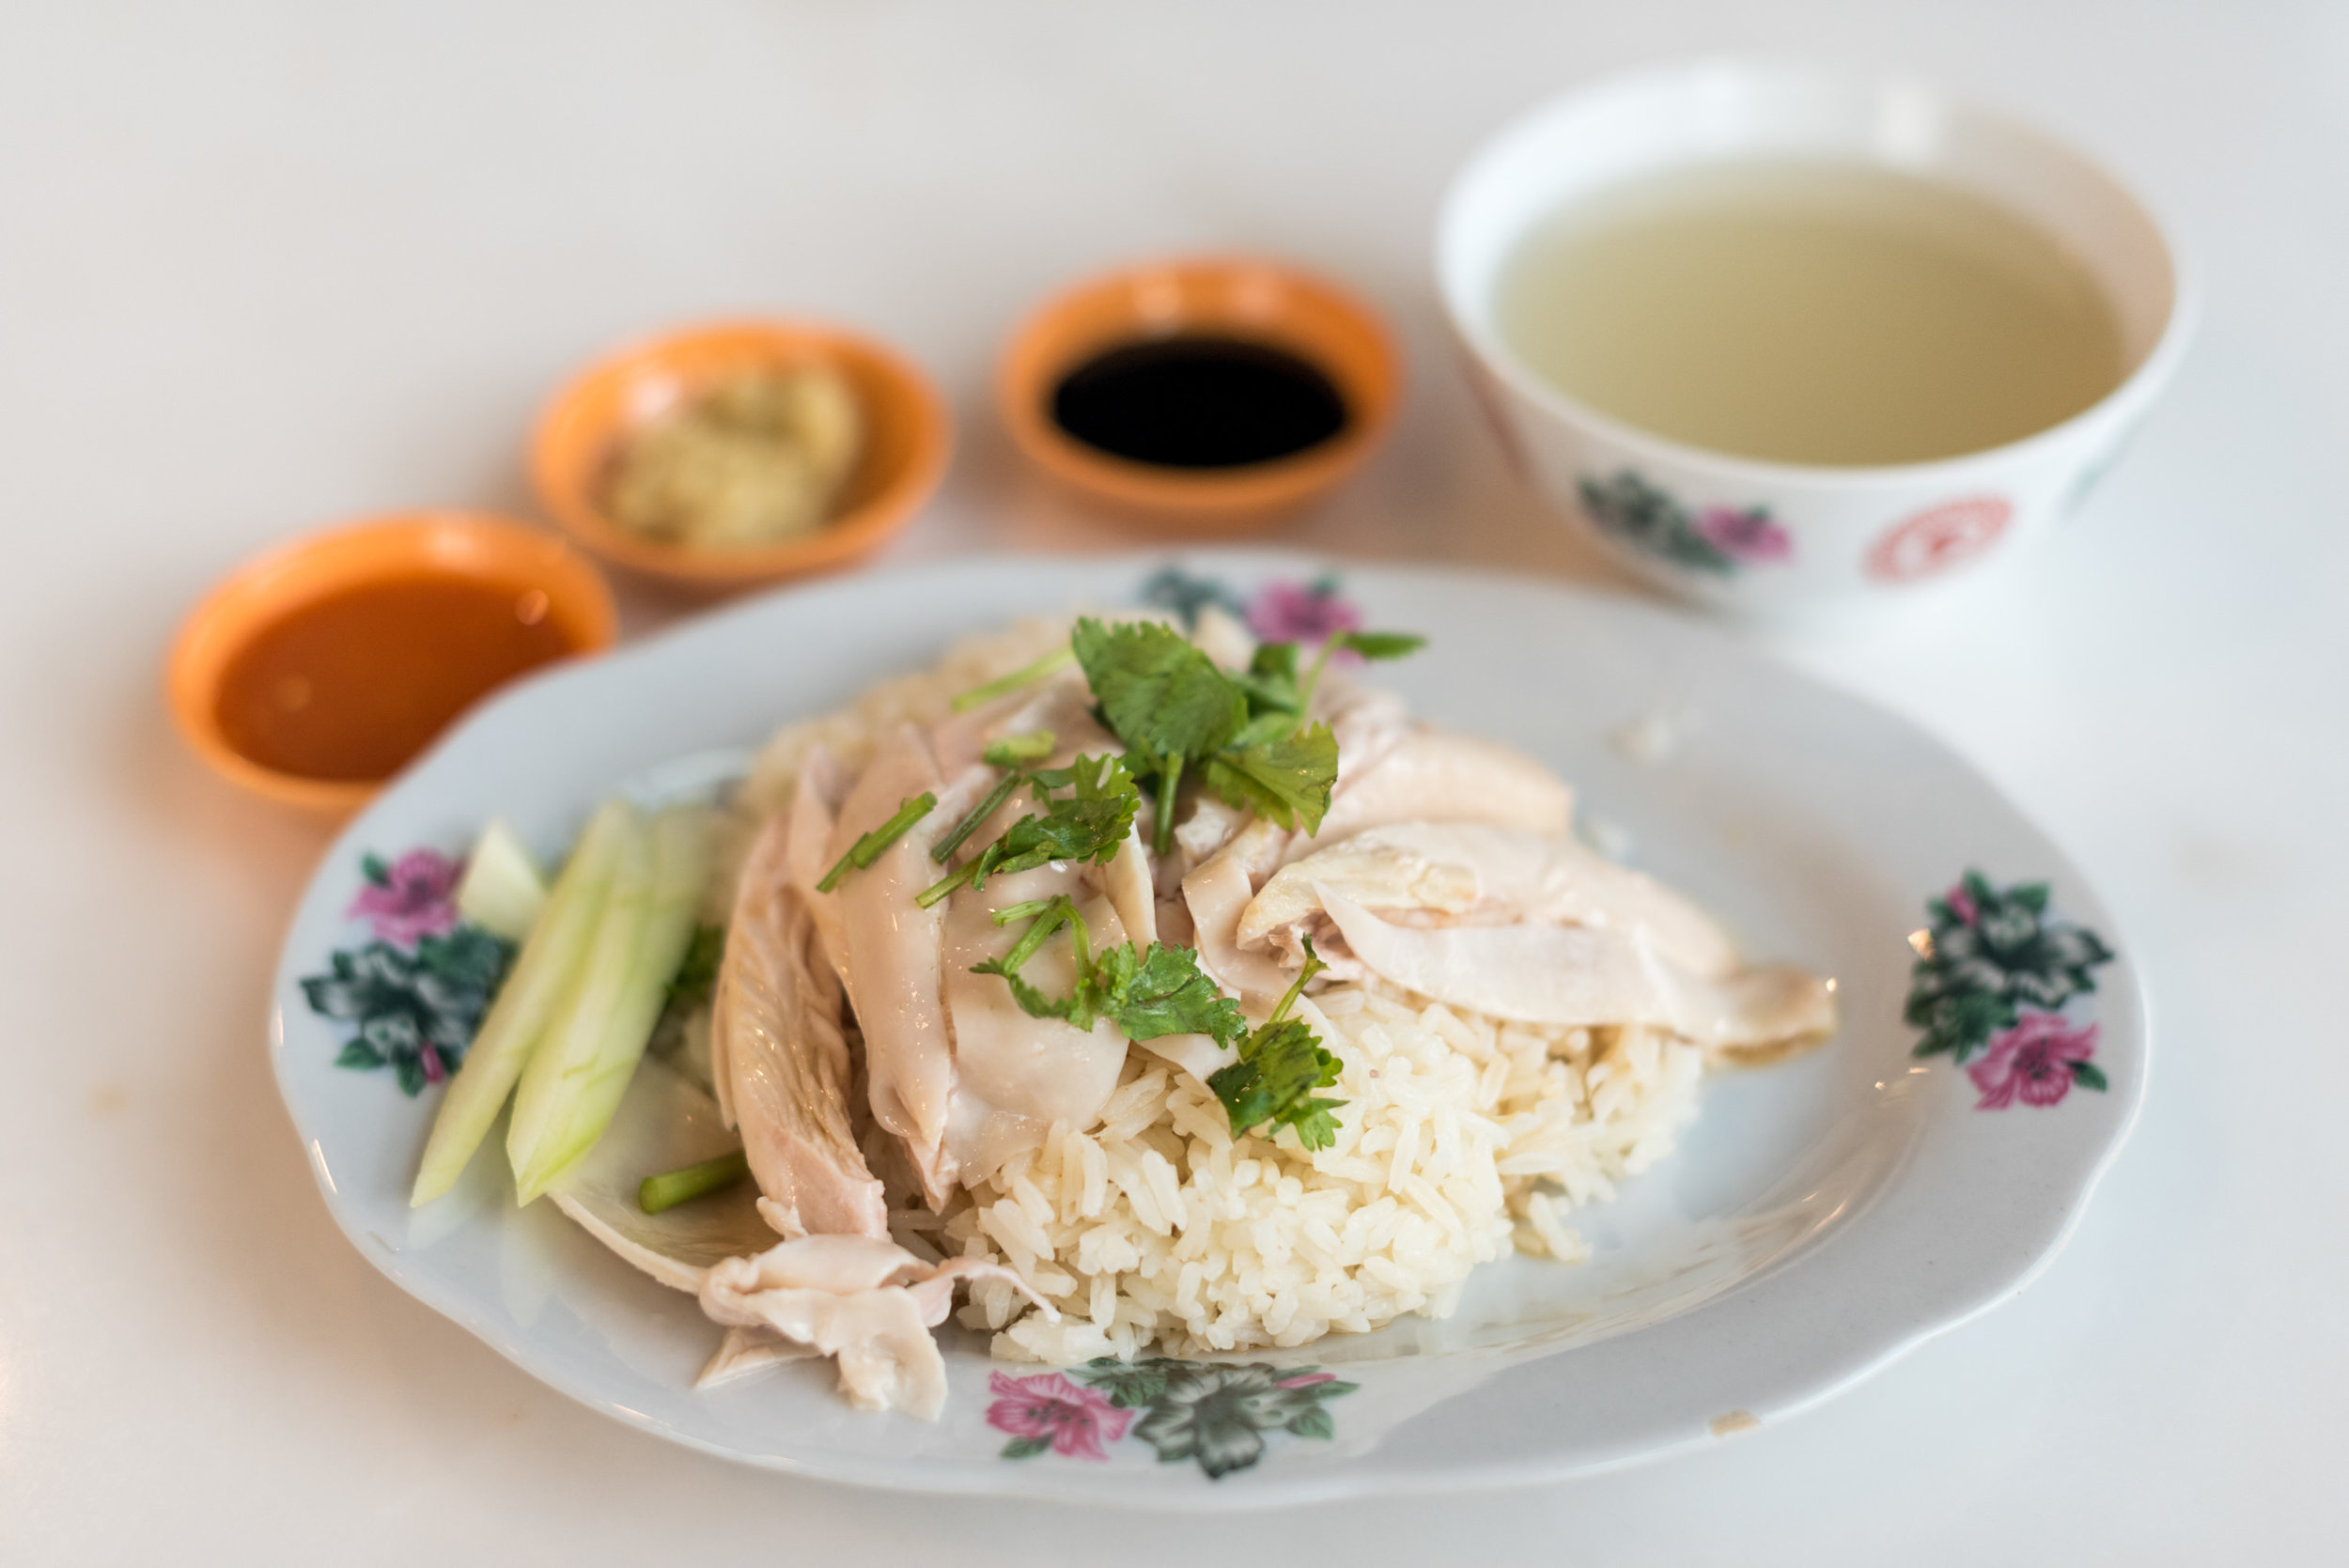 Chicken Rice  Let's Eat - Quayside Isle (Sentosa Cove)